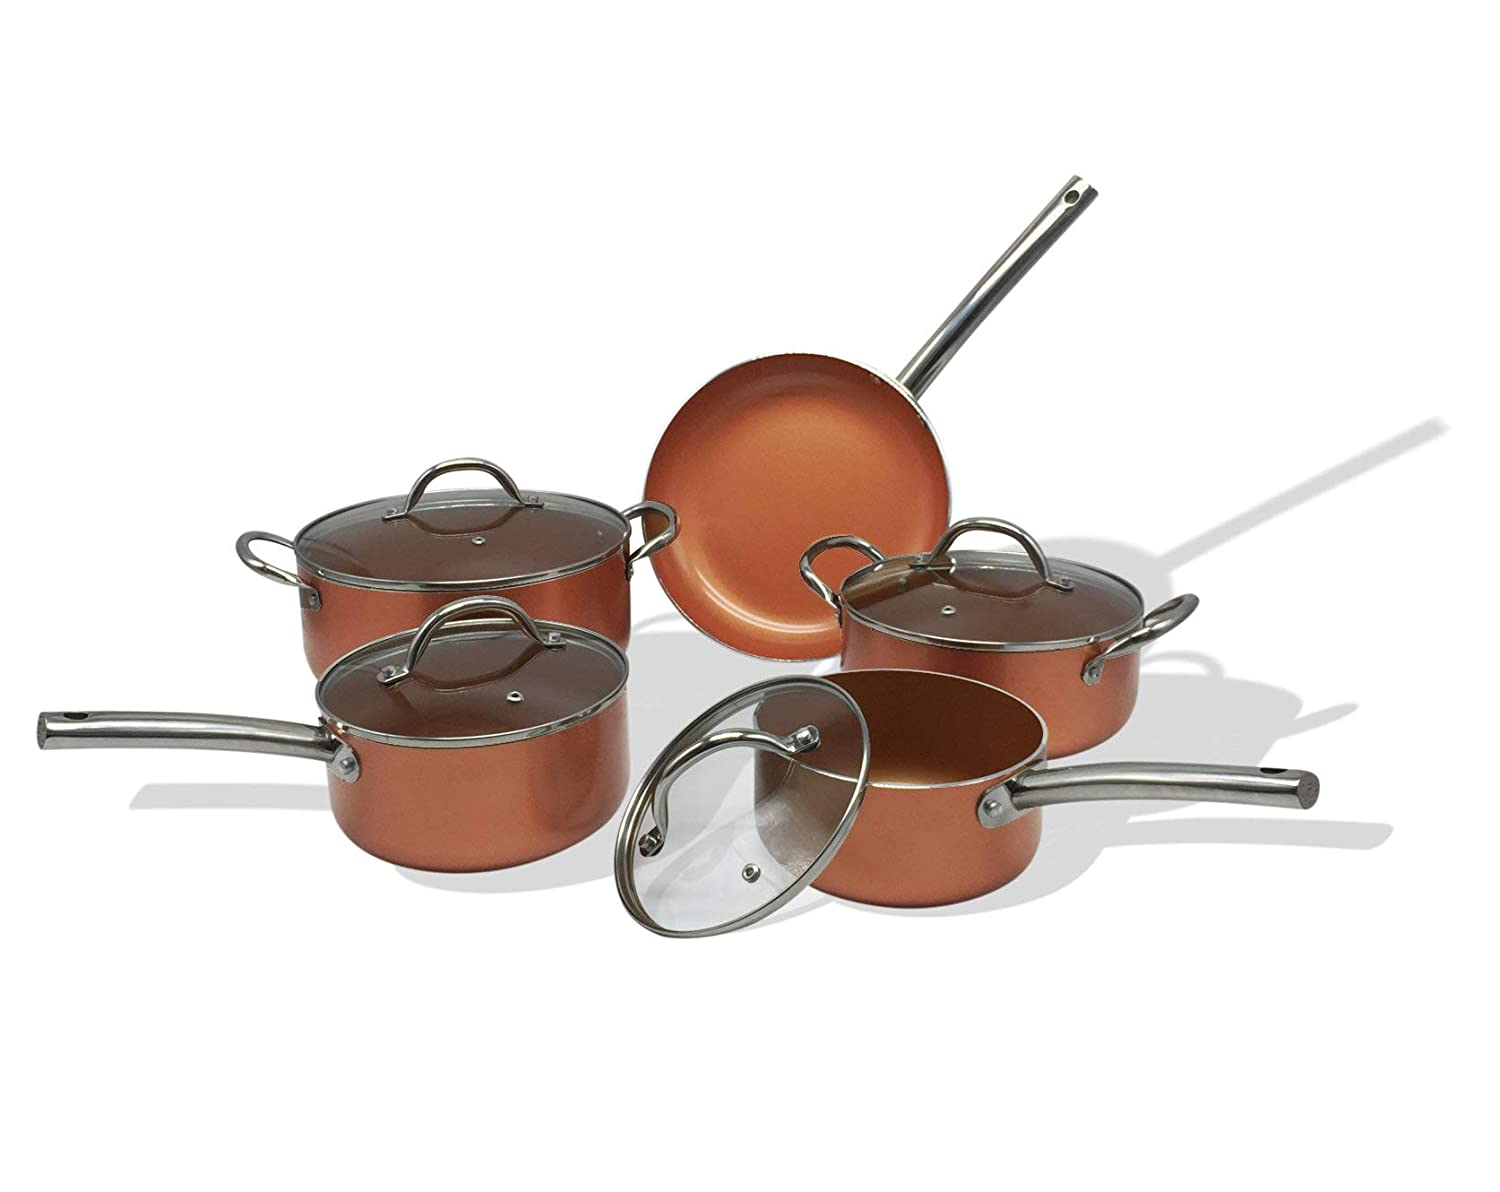 Chef Quality Copper 9 Piece Non Stick Induction Pan Set groundlevel.co.uk